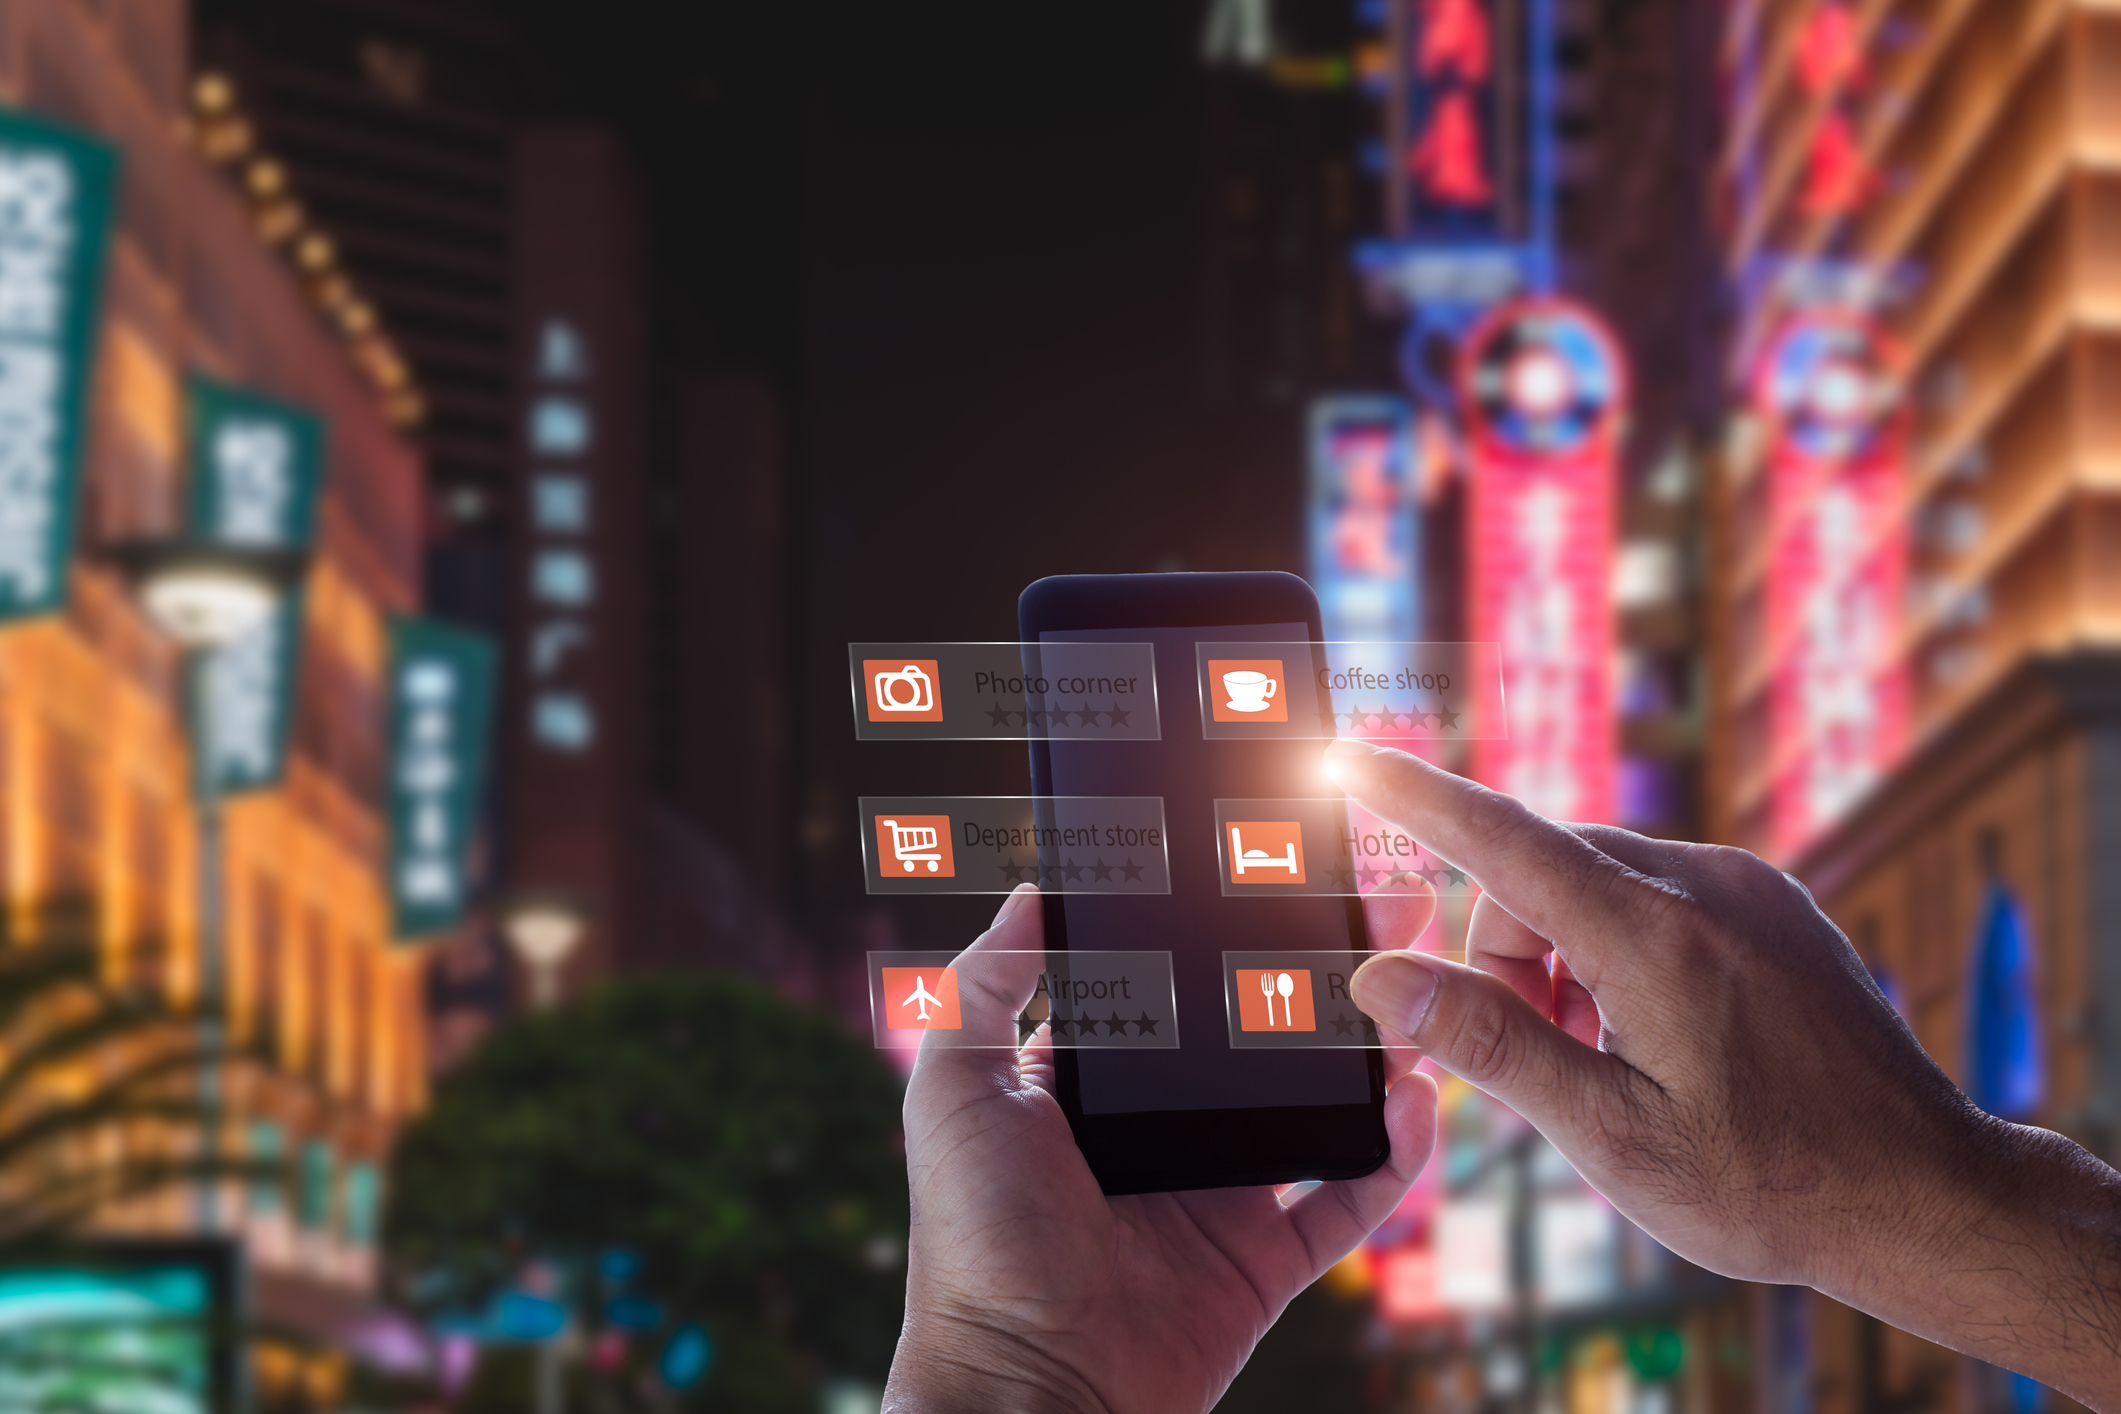 Hand holding smart phone using an AR application in the middle of a street at night